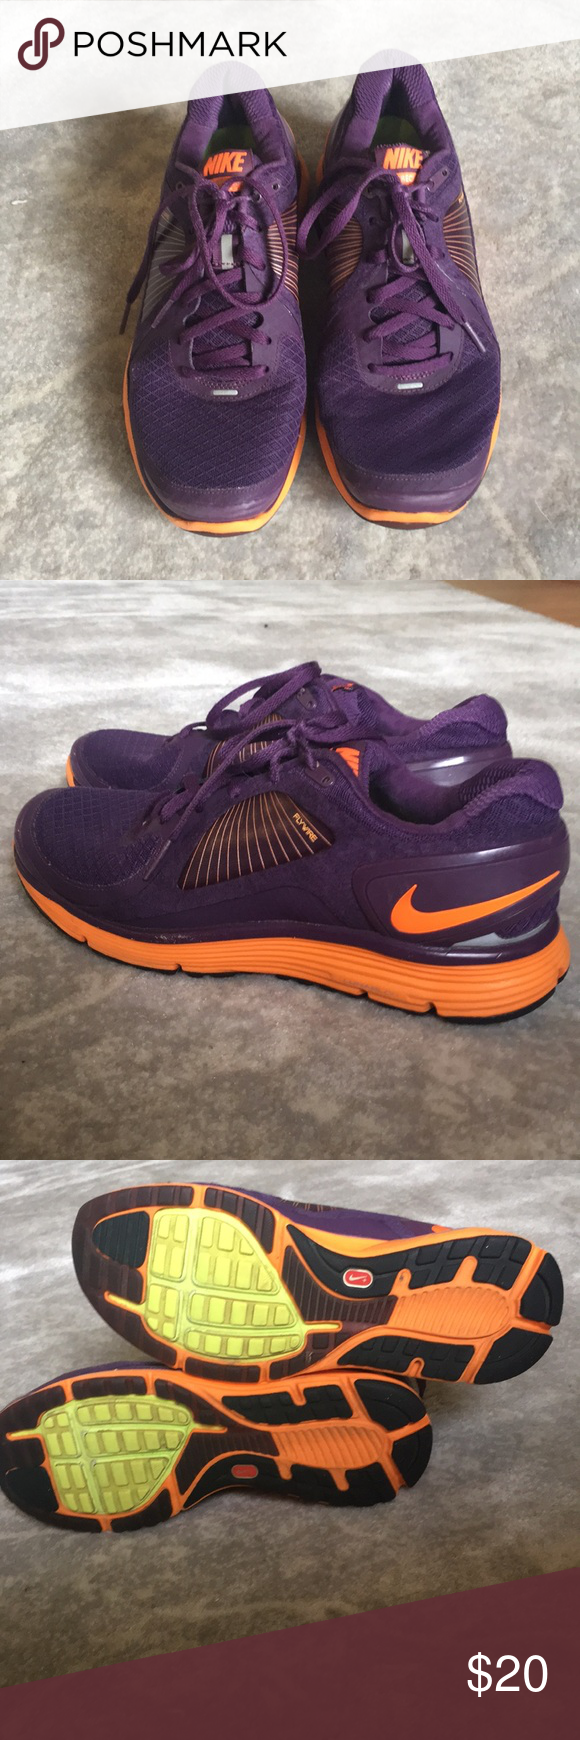 best service f2c93 0df60 Nike Lunar Eclipse with Flywire, Lunarlon, Fitsole Purple and orange Nike  trainers. These are super comfortable and stylish. These have definitely  been worn ...